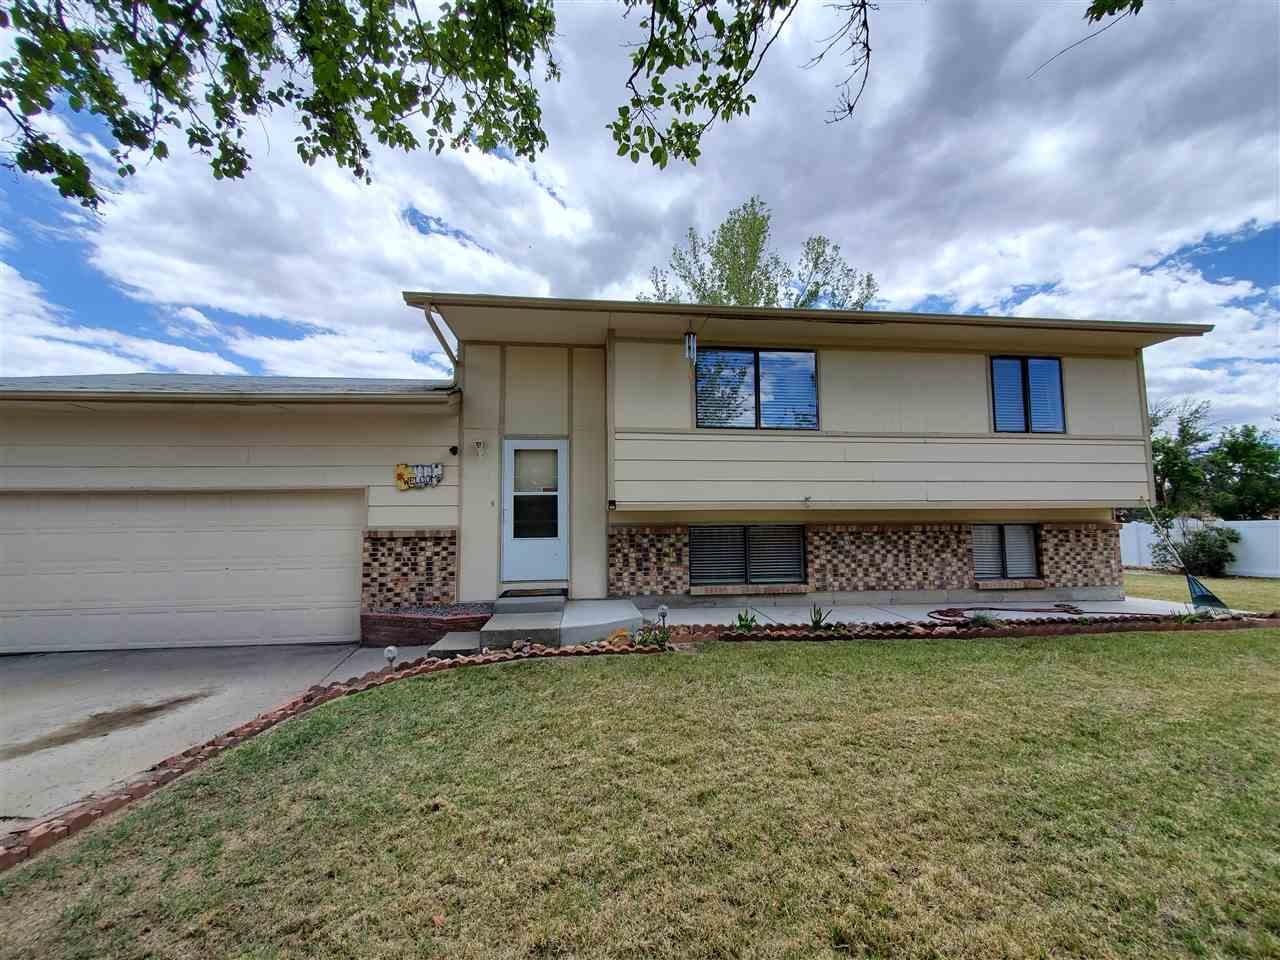 2895 1/2 Jean Lane Property Photo - Grand Junction, CO real estate listing